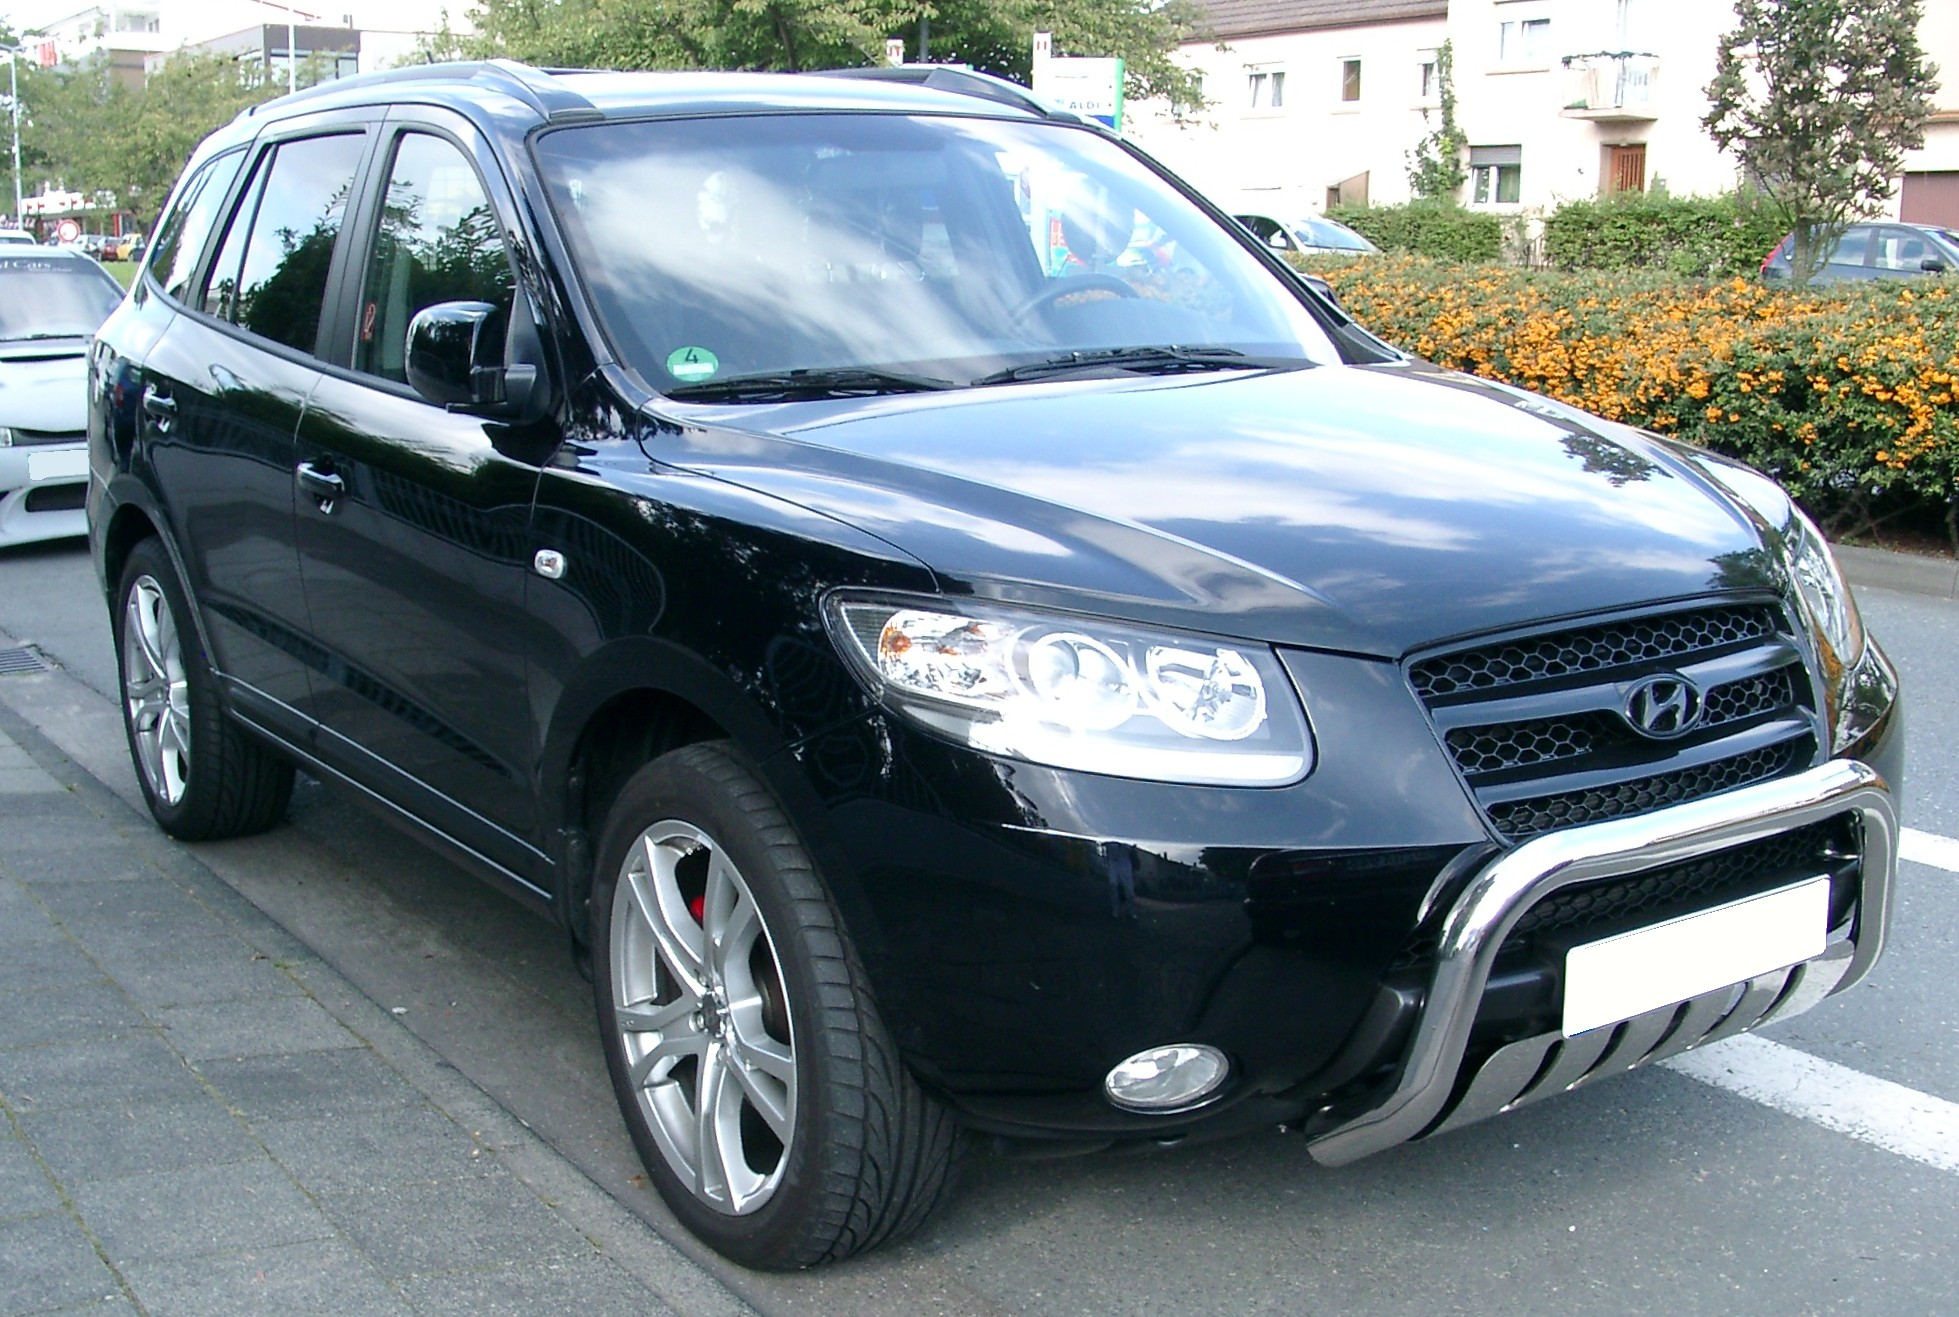 2007 hyundai santa fe ii pictures information and specs. Black Bedroom Furniture Sets. Home Design Ideas